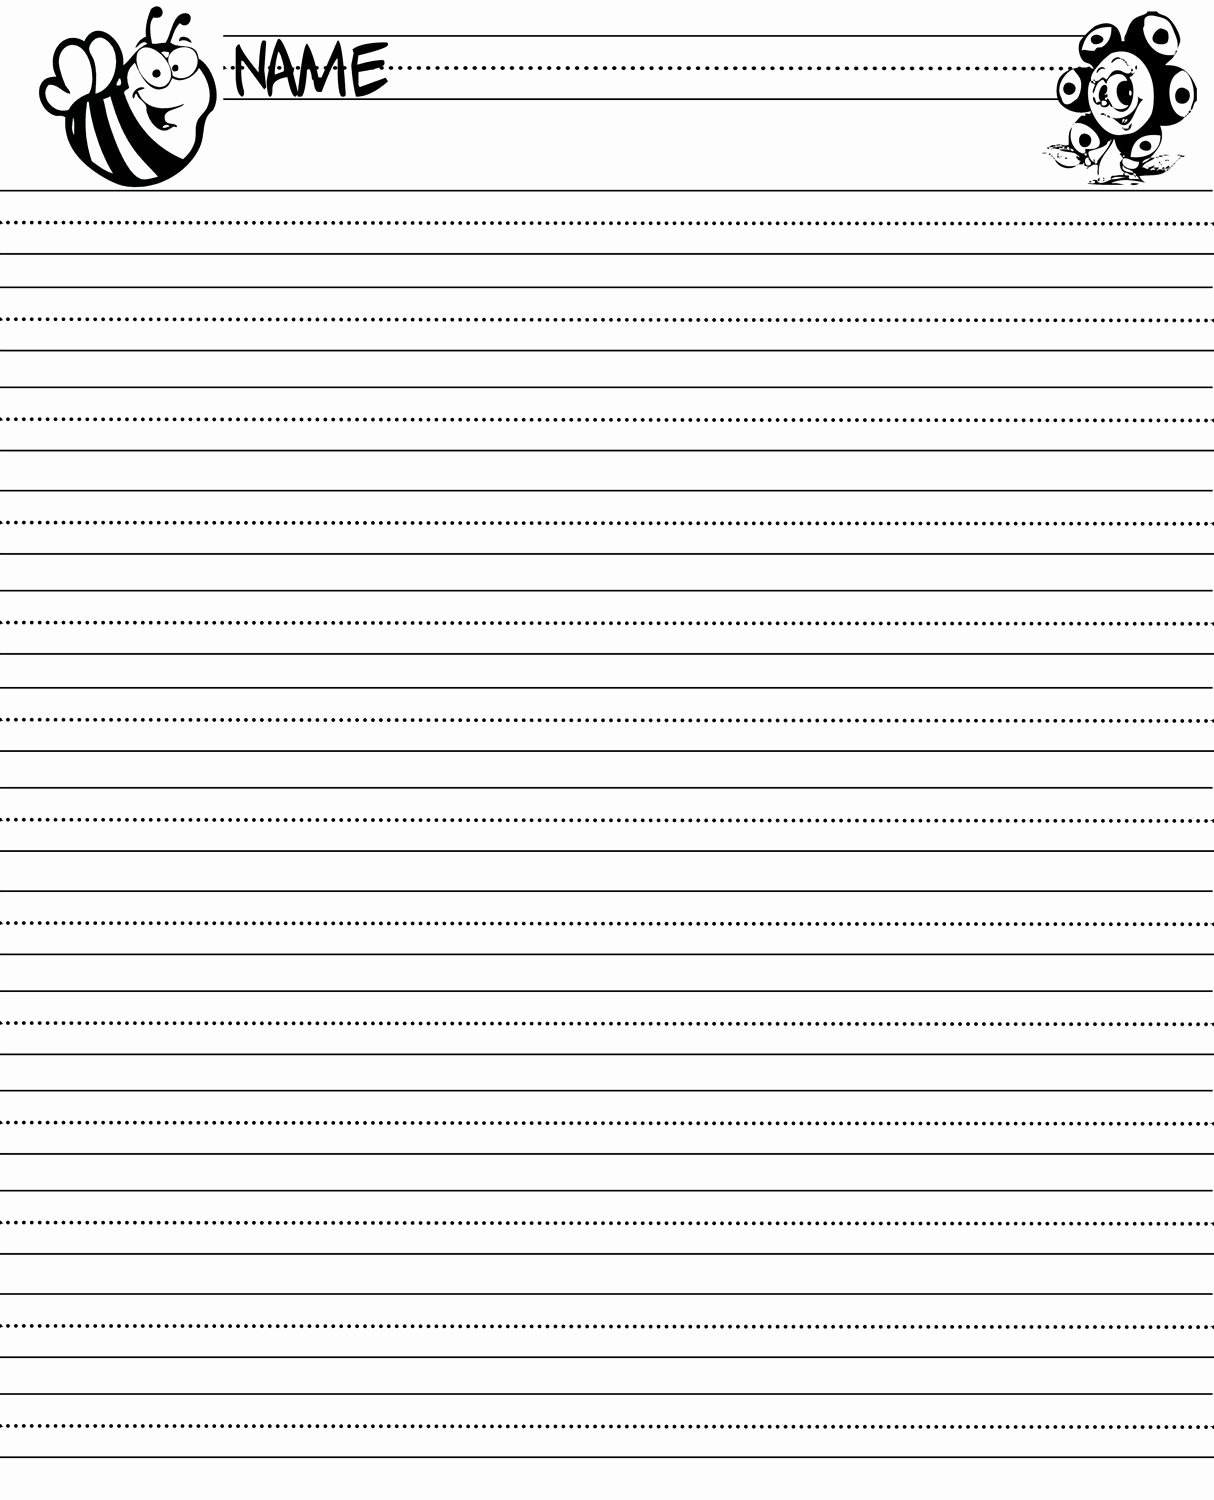 Printable Lined Paper for Kids Best Of Writing Paper Printable for Children